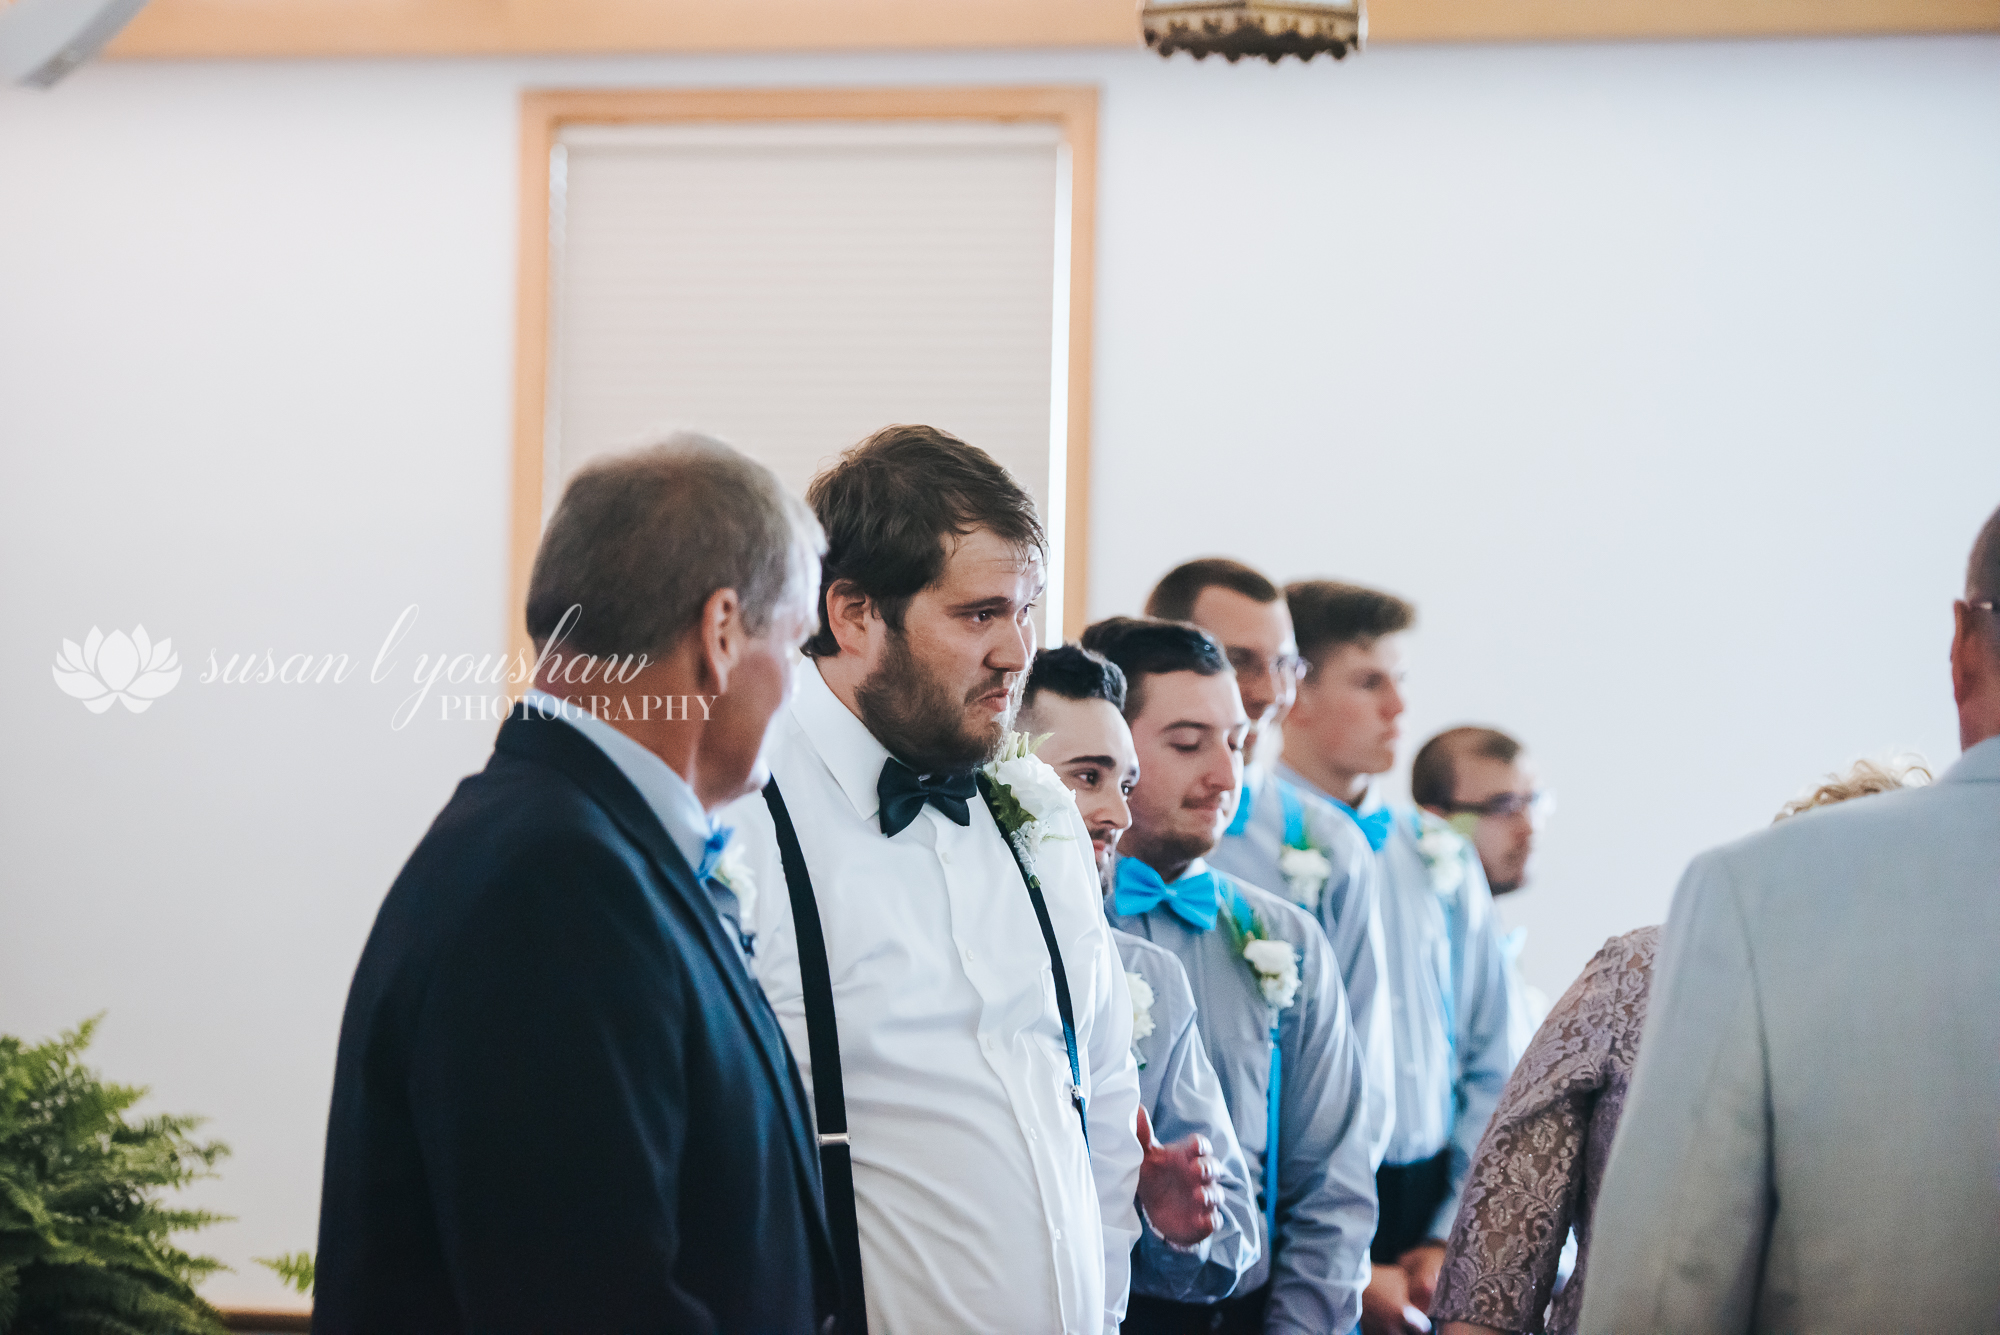 Katelyn and Wes Wedding Photos 07-13-2019 SLY Photography-48.jpg